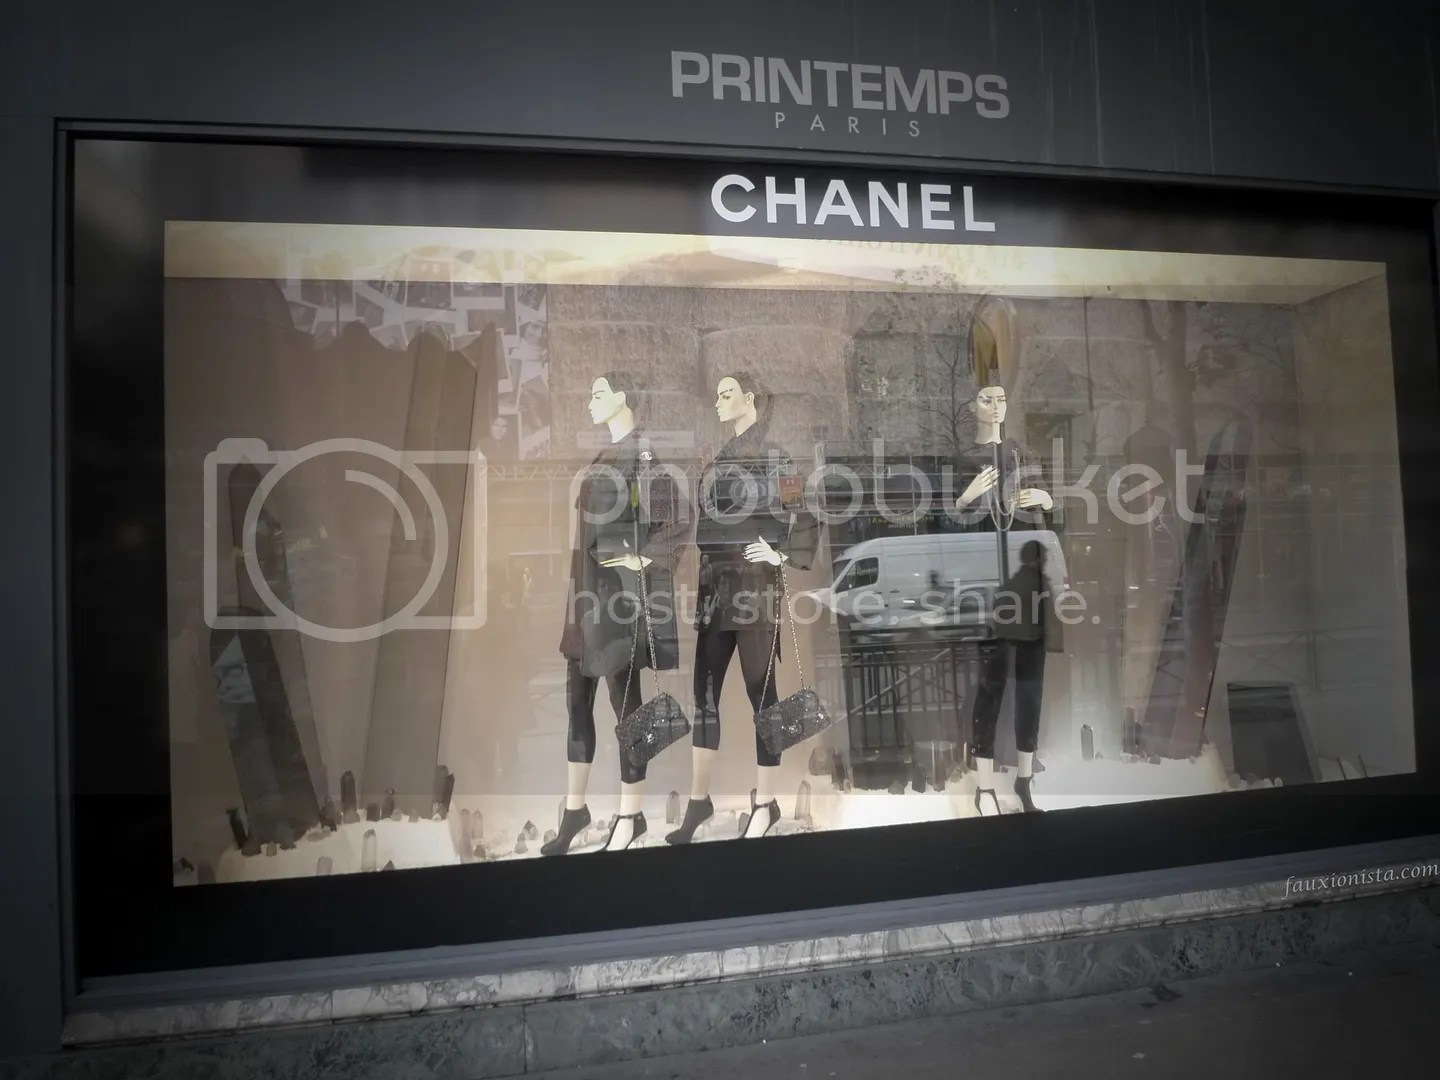 Printemps Chanel window